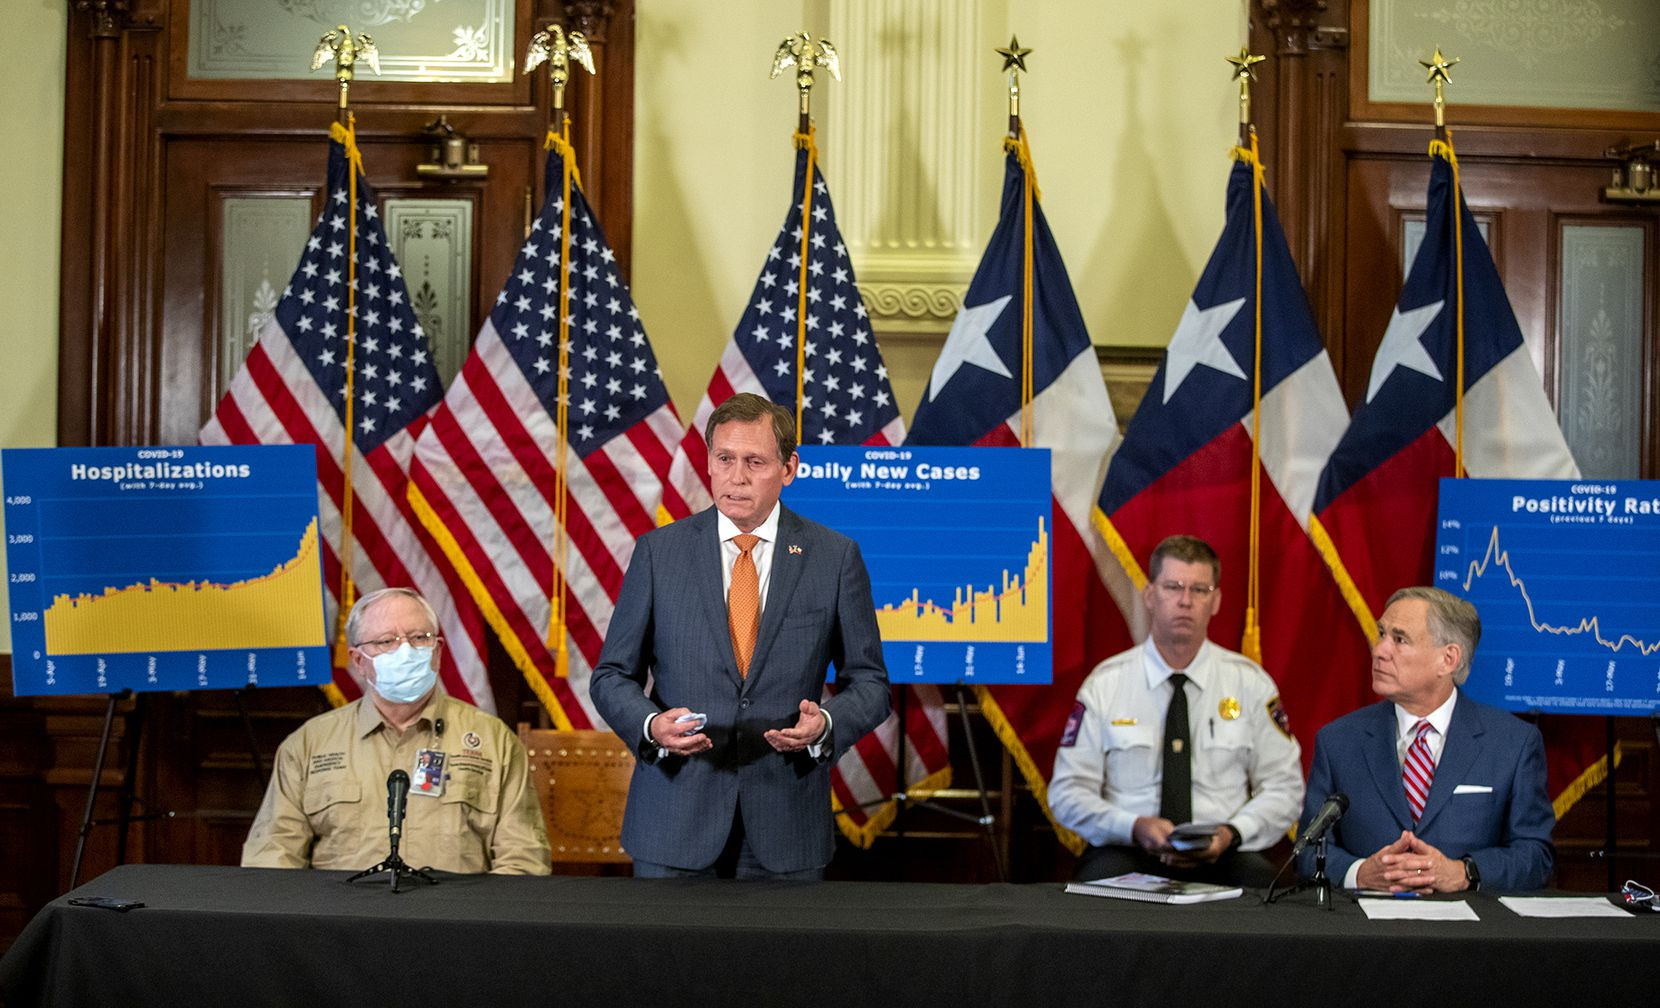 Dr. John Zerwas, a former state representative, answered questions June 22 from the media during an update on COVID-19. Seated from left are Dr. John William Hellerstedt, Department of State Health Services; Nim Kidd, chief of the Texas Division of Emergency Management; and Gov. Greg Abbott.